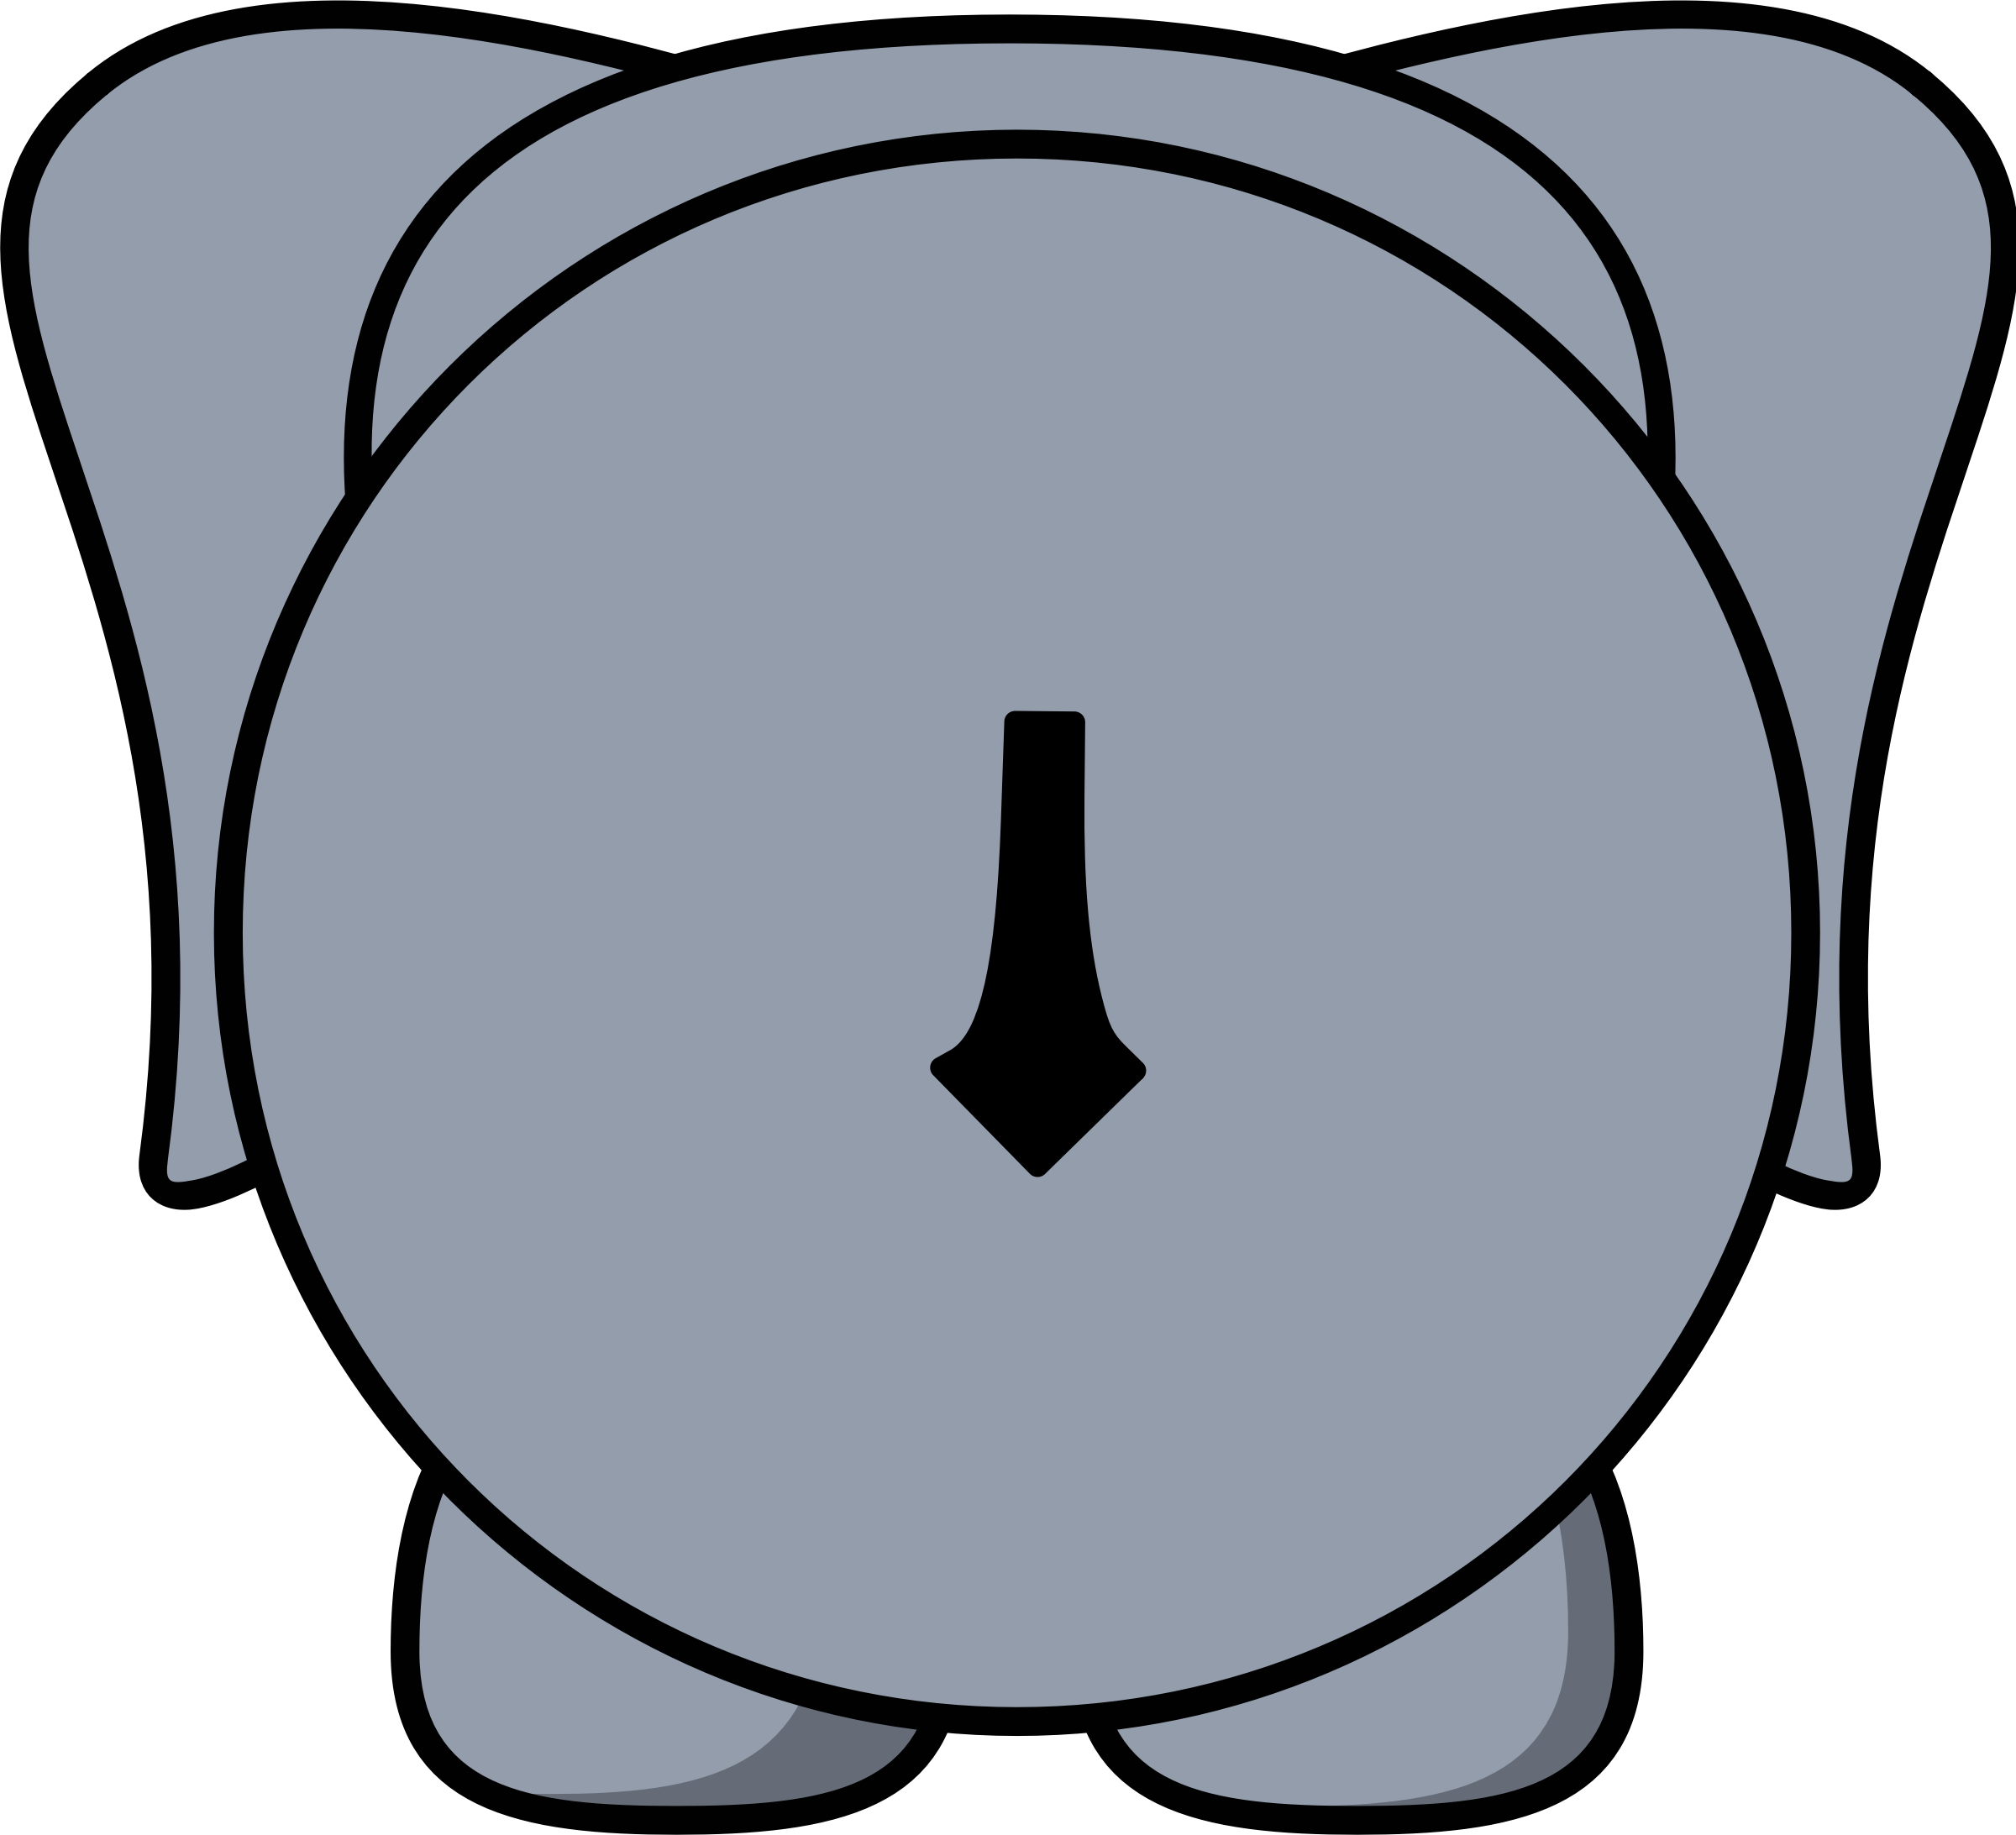 Elephant icons png free. Back clipart back side